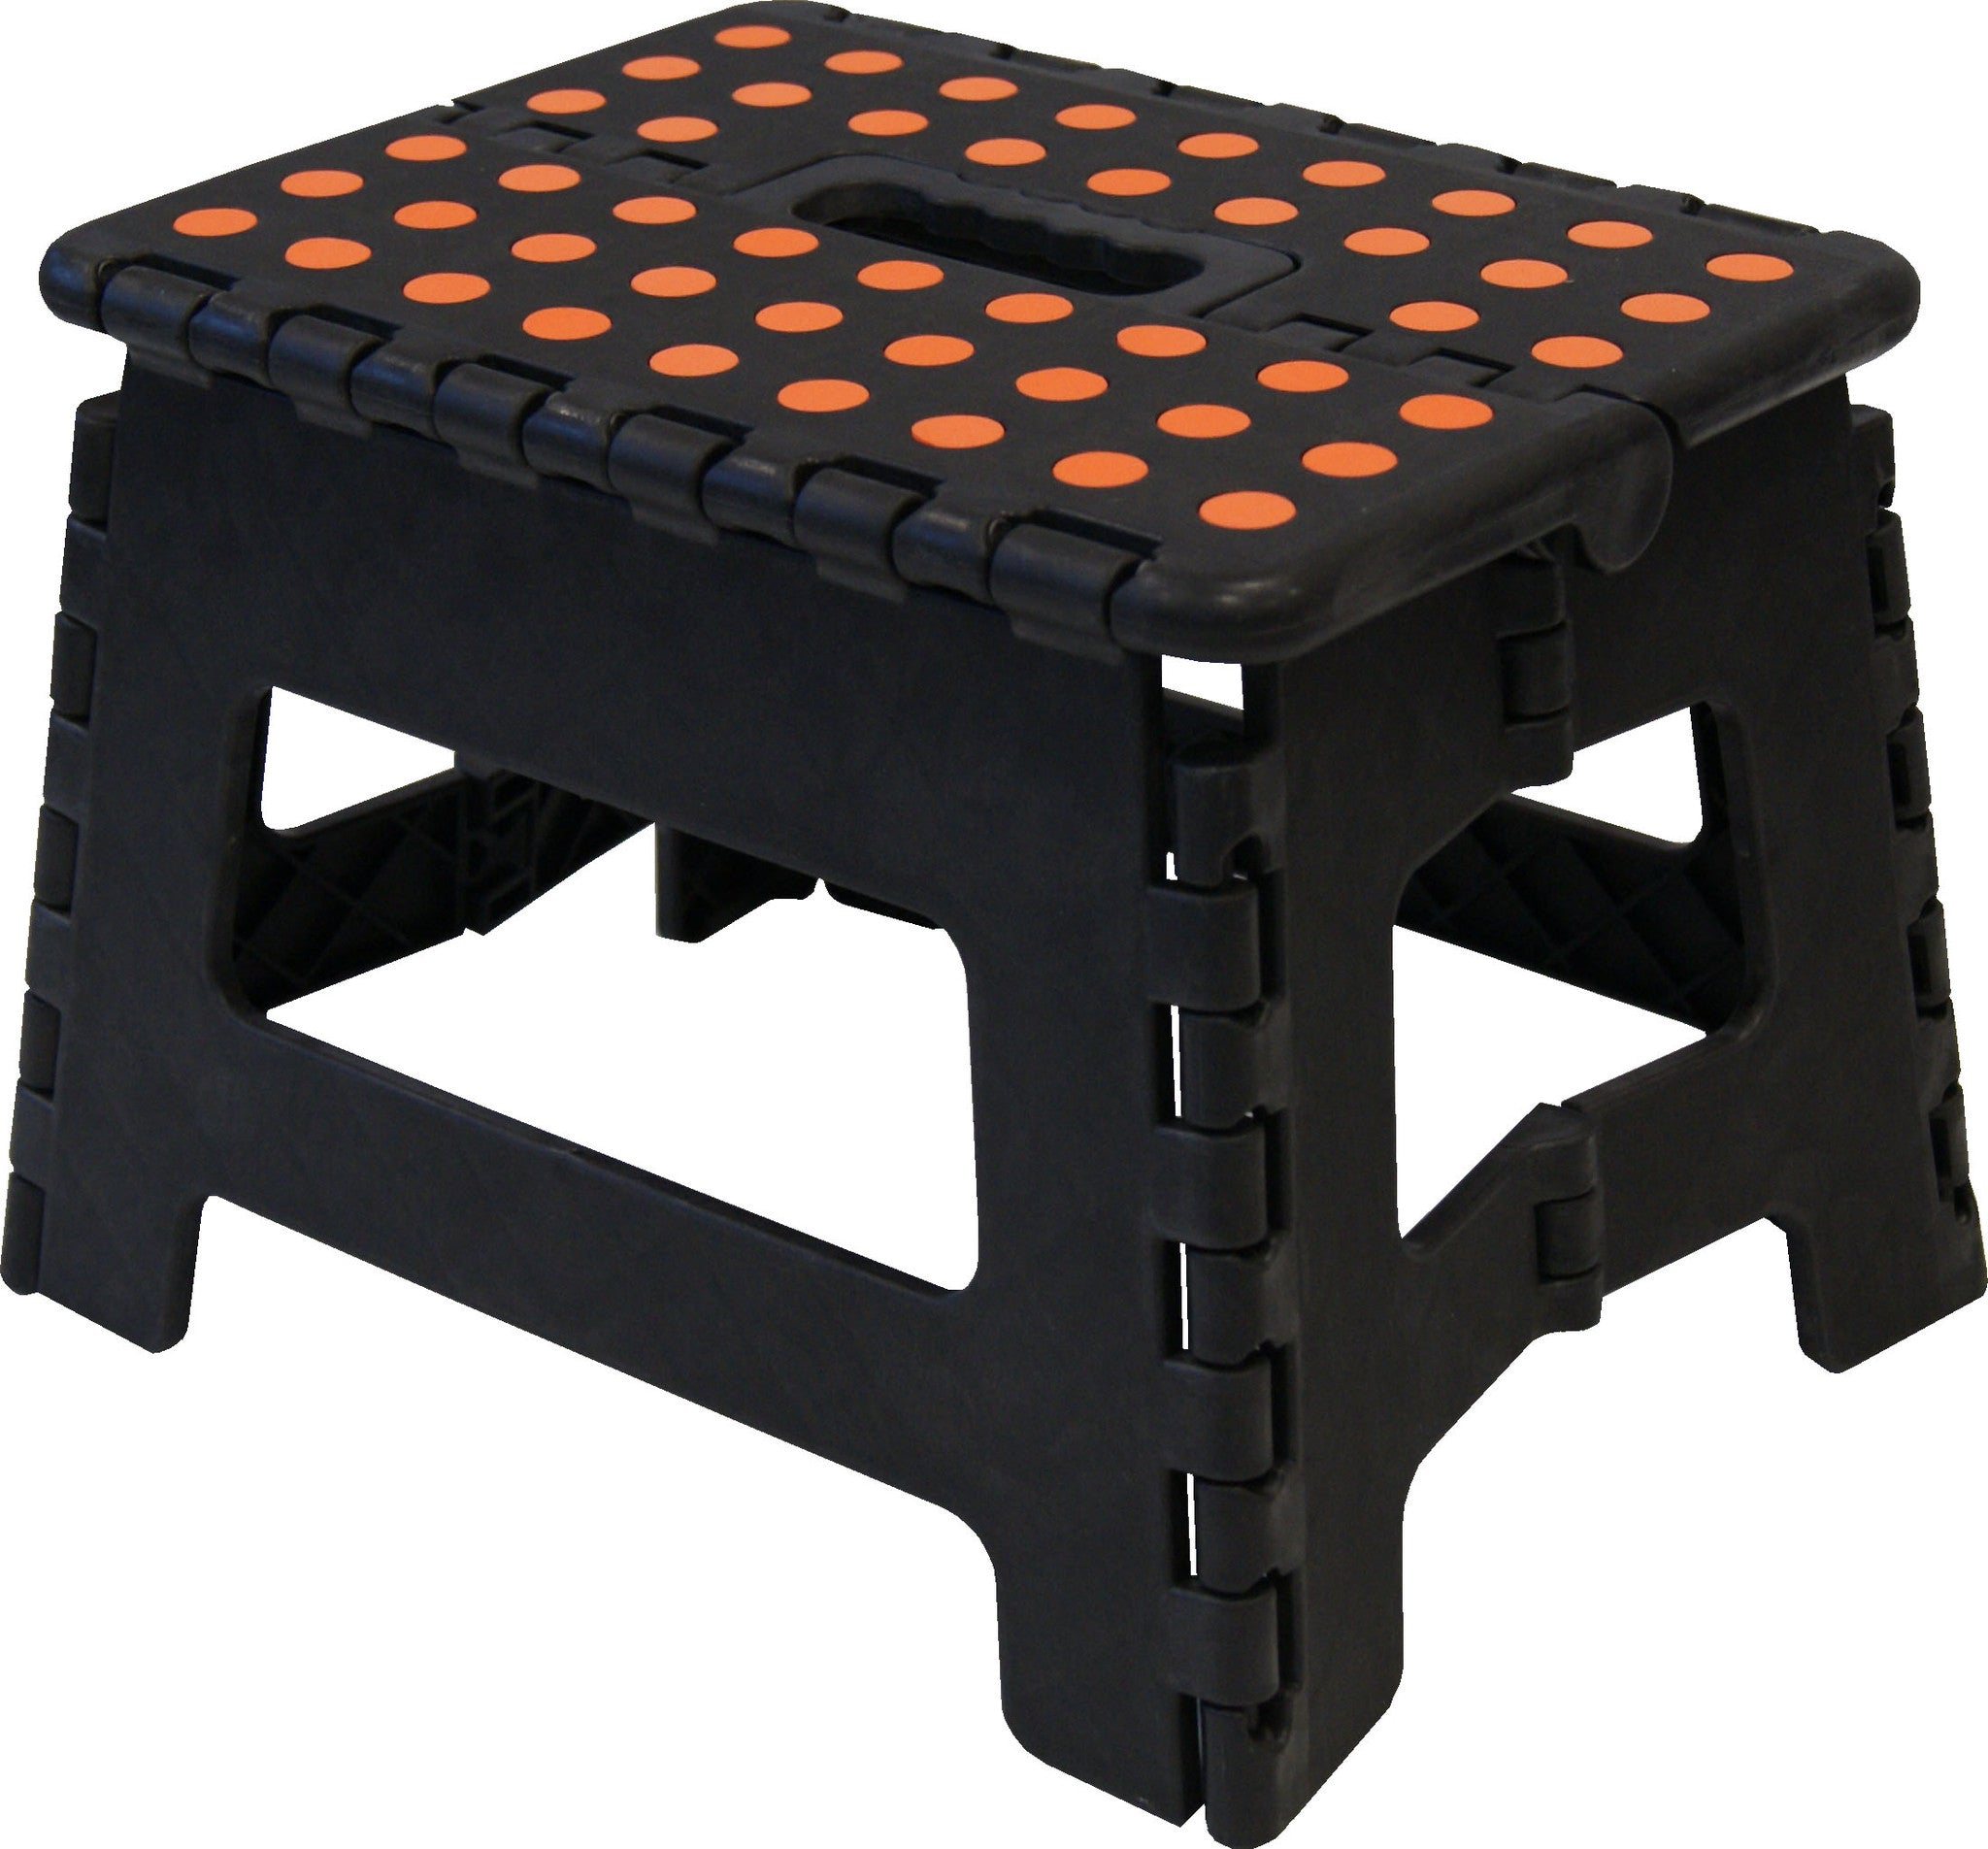 Wham Small Folding Step Stool-20140 - Homely Nigeria - 1